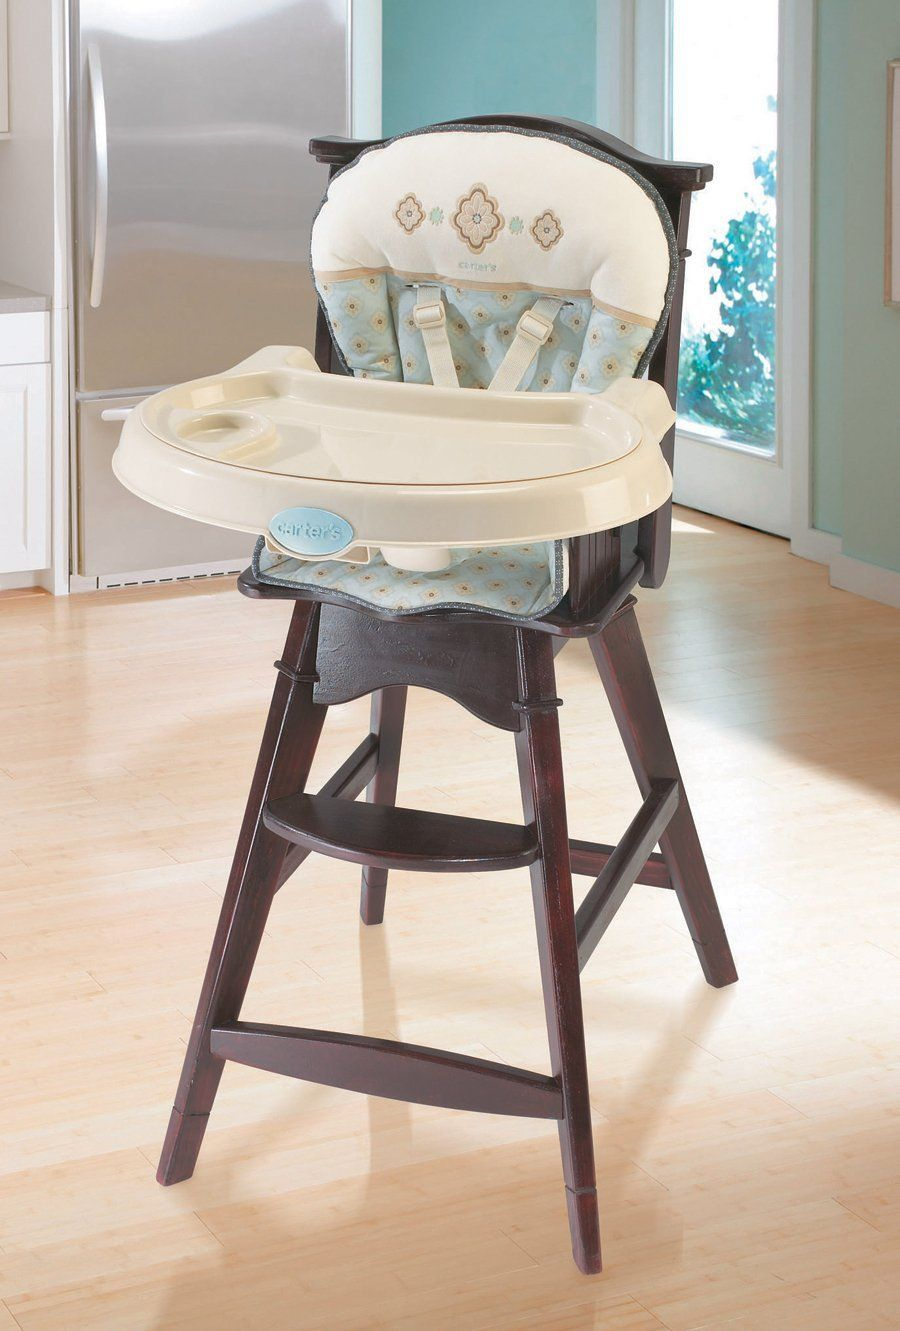 100+ High End High Chair   Cheap Kitchen Island Ideas Check More At Http: